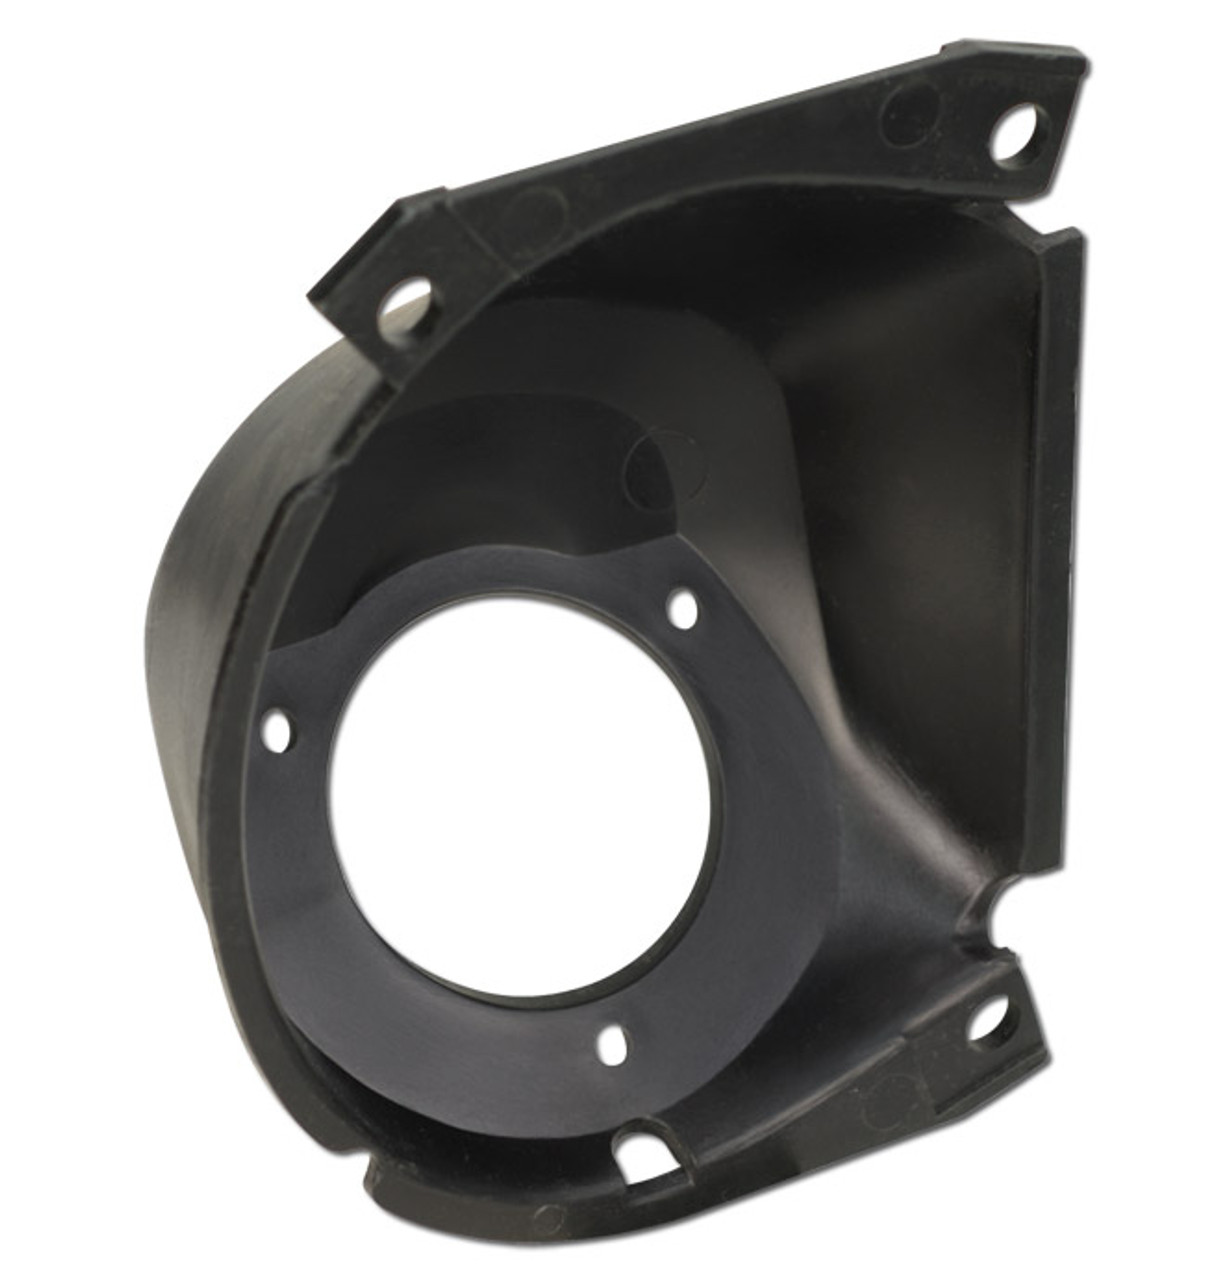 small resolution of 1988 1989 1990 1991 1993 1994 1995 1996 1997 1998 chevy chevrolet gmc pickup c10 c20